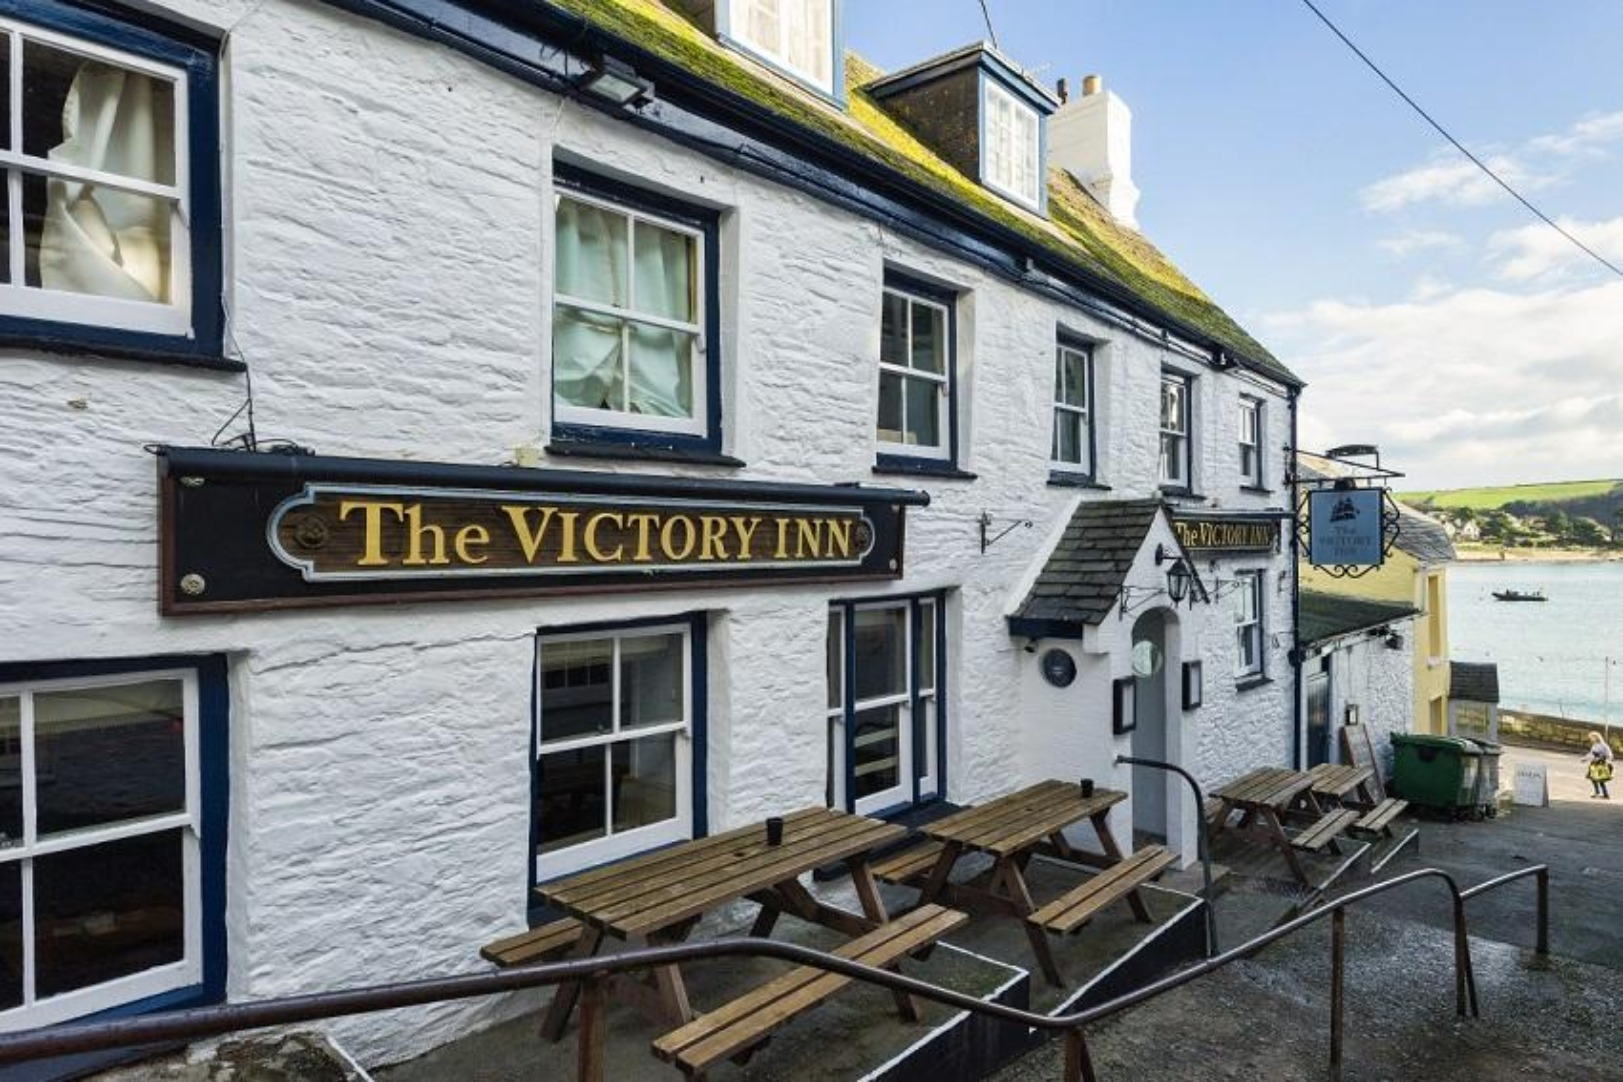 A house that has a sign on the side of a building at The Victory Inn.